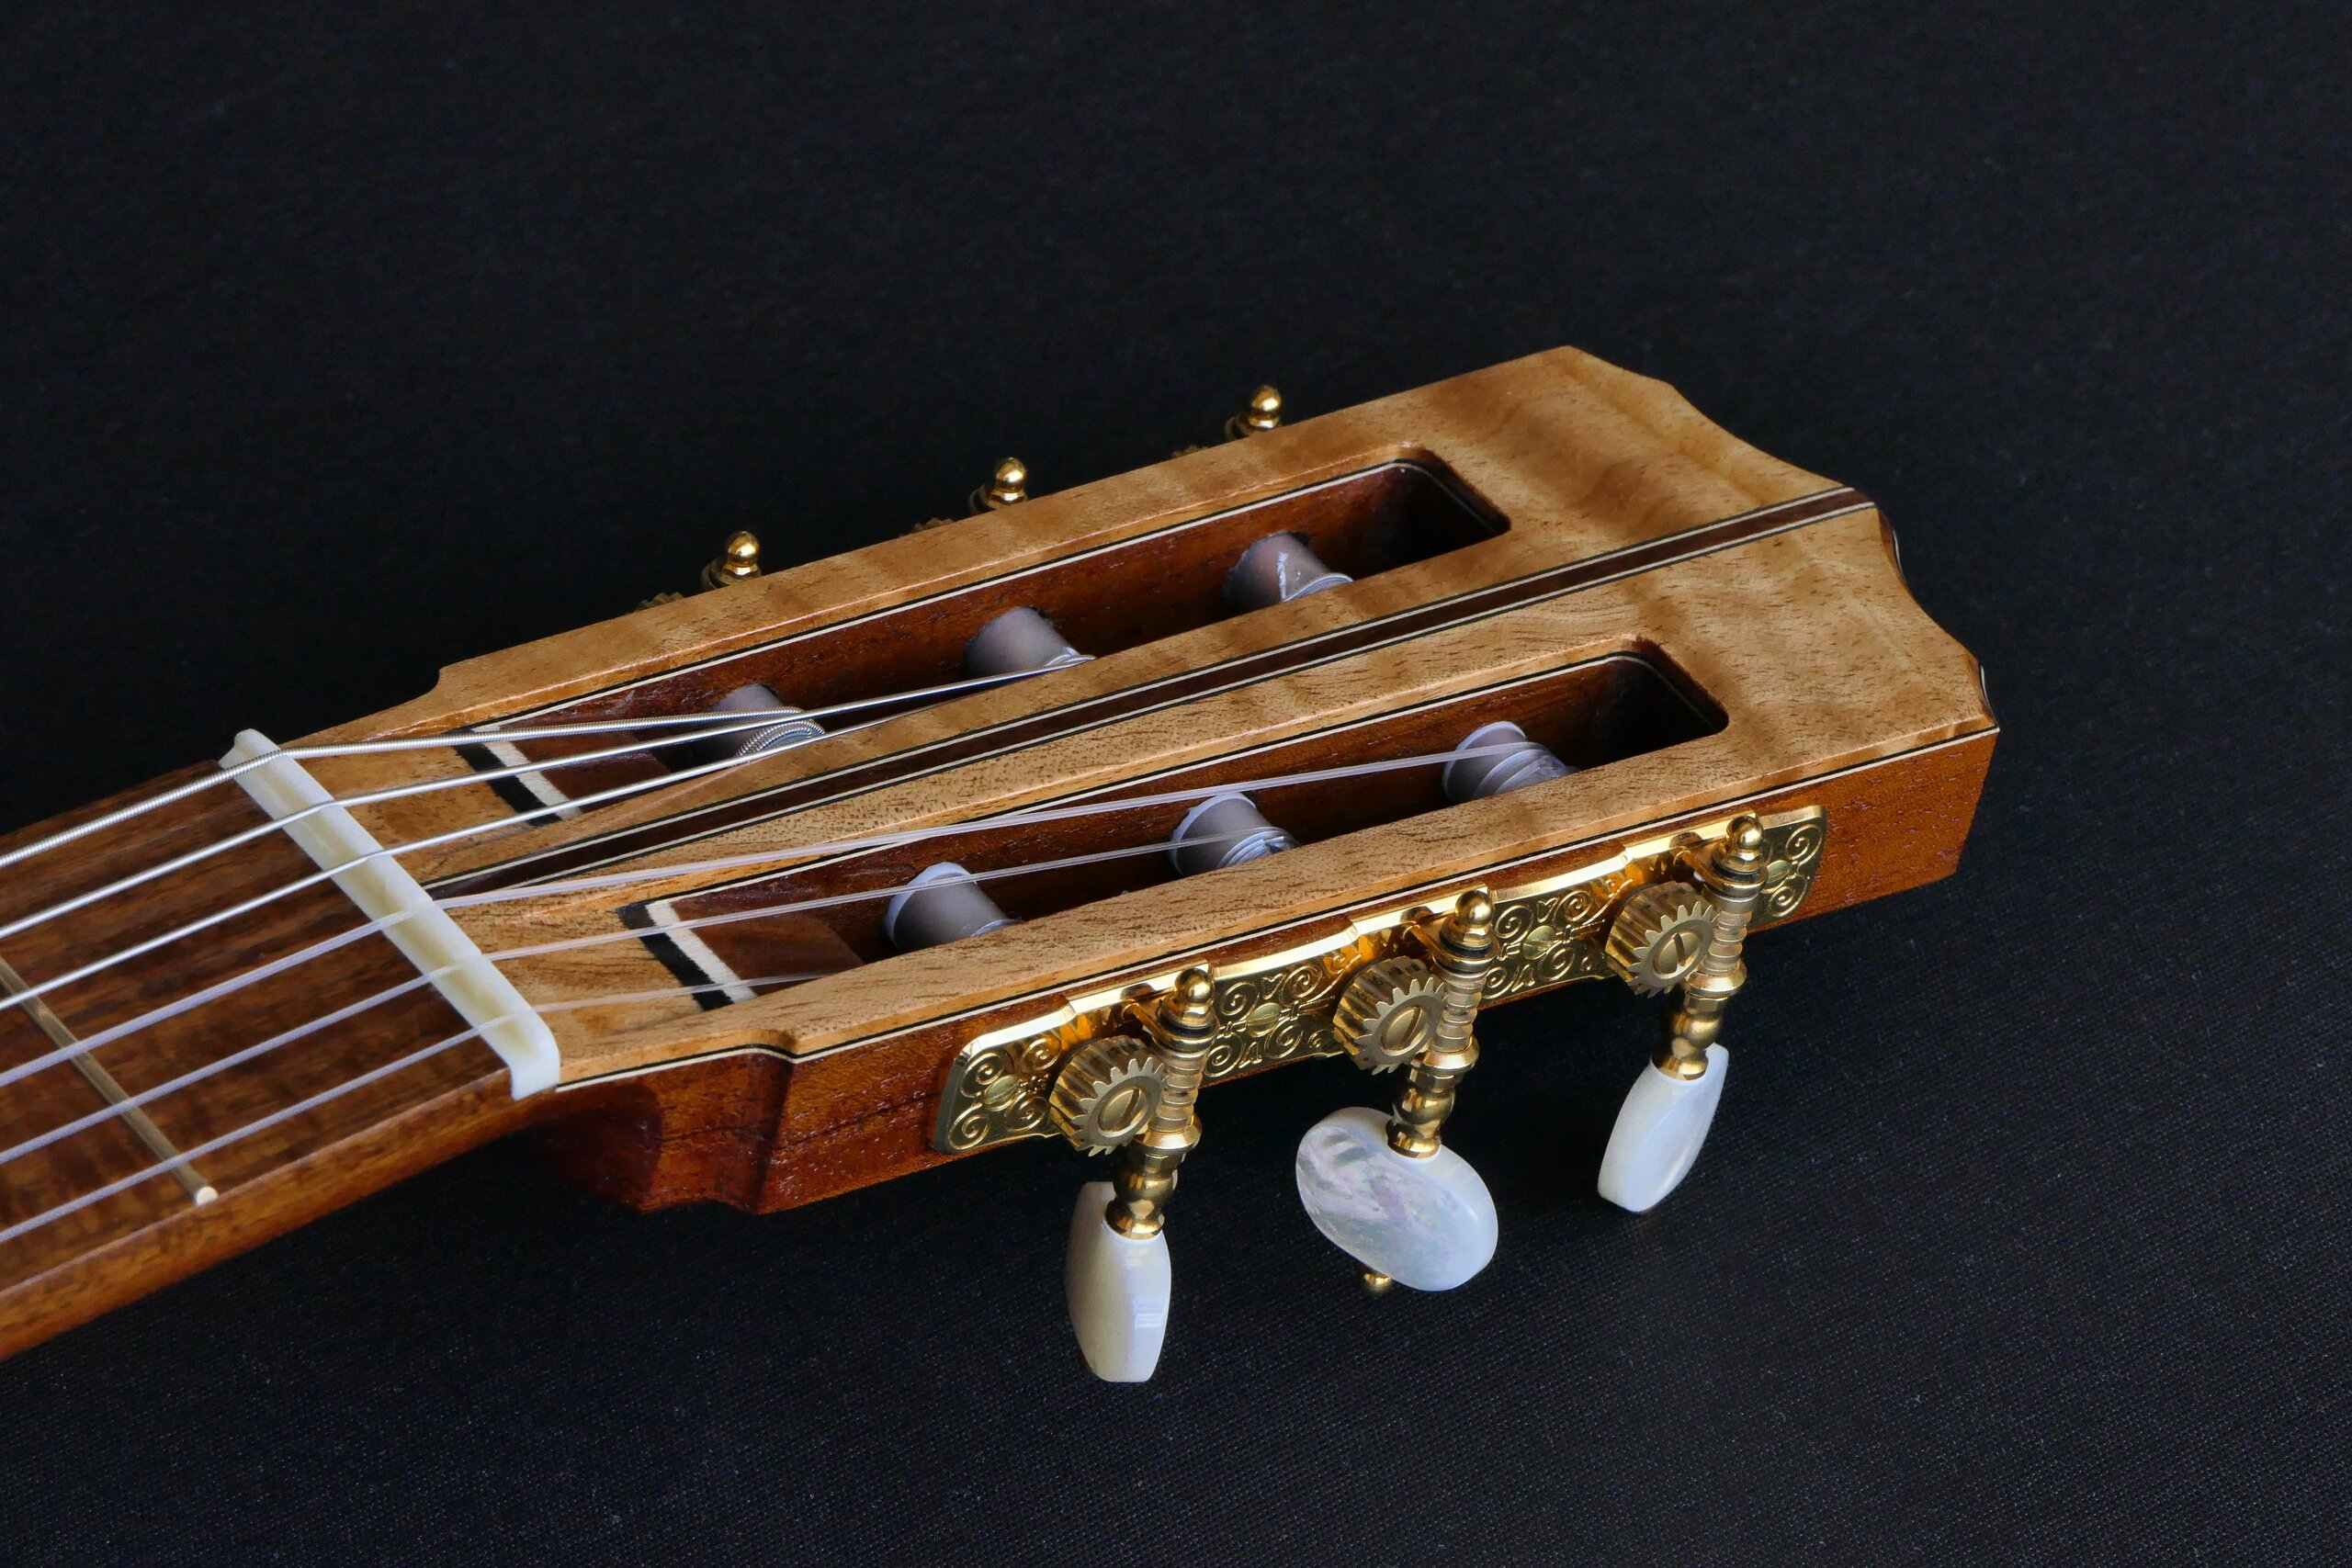 Flamenco guitar slot headstock, Gotoh tuners, pearl buttons